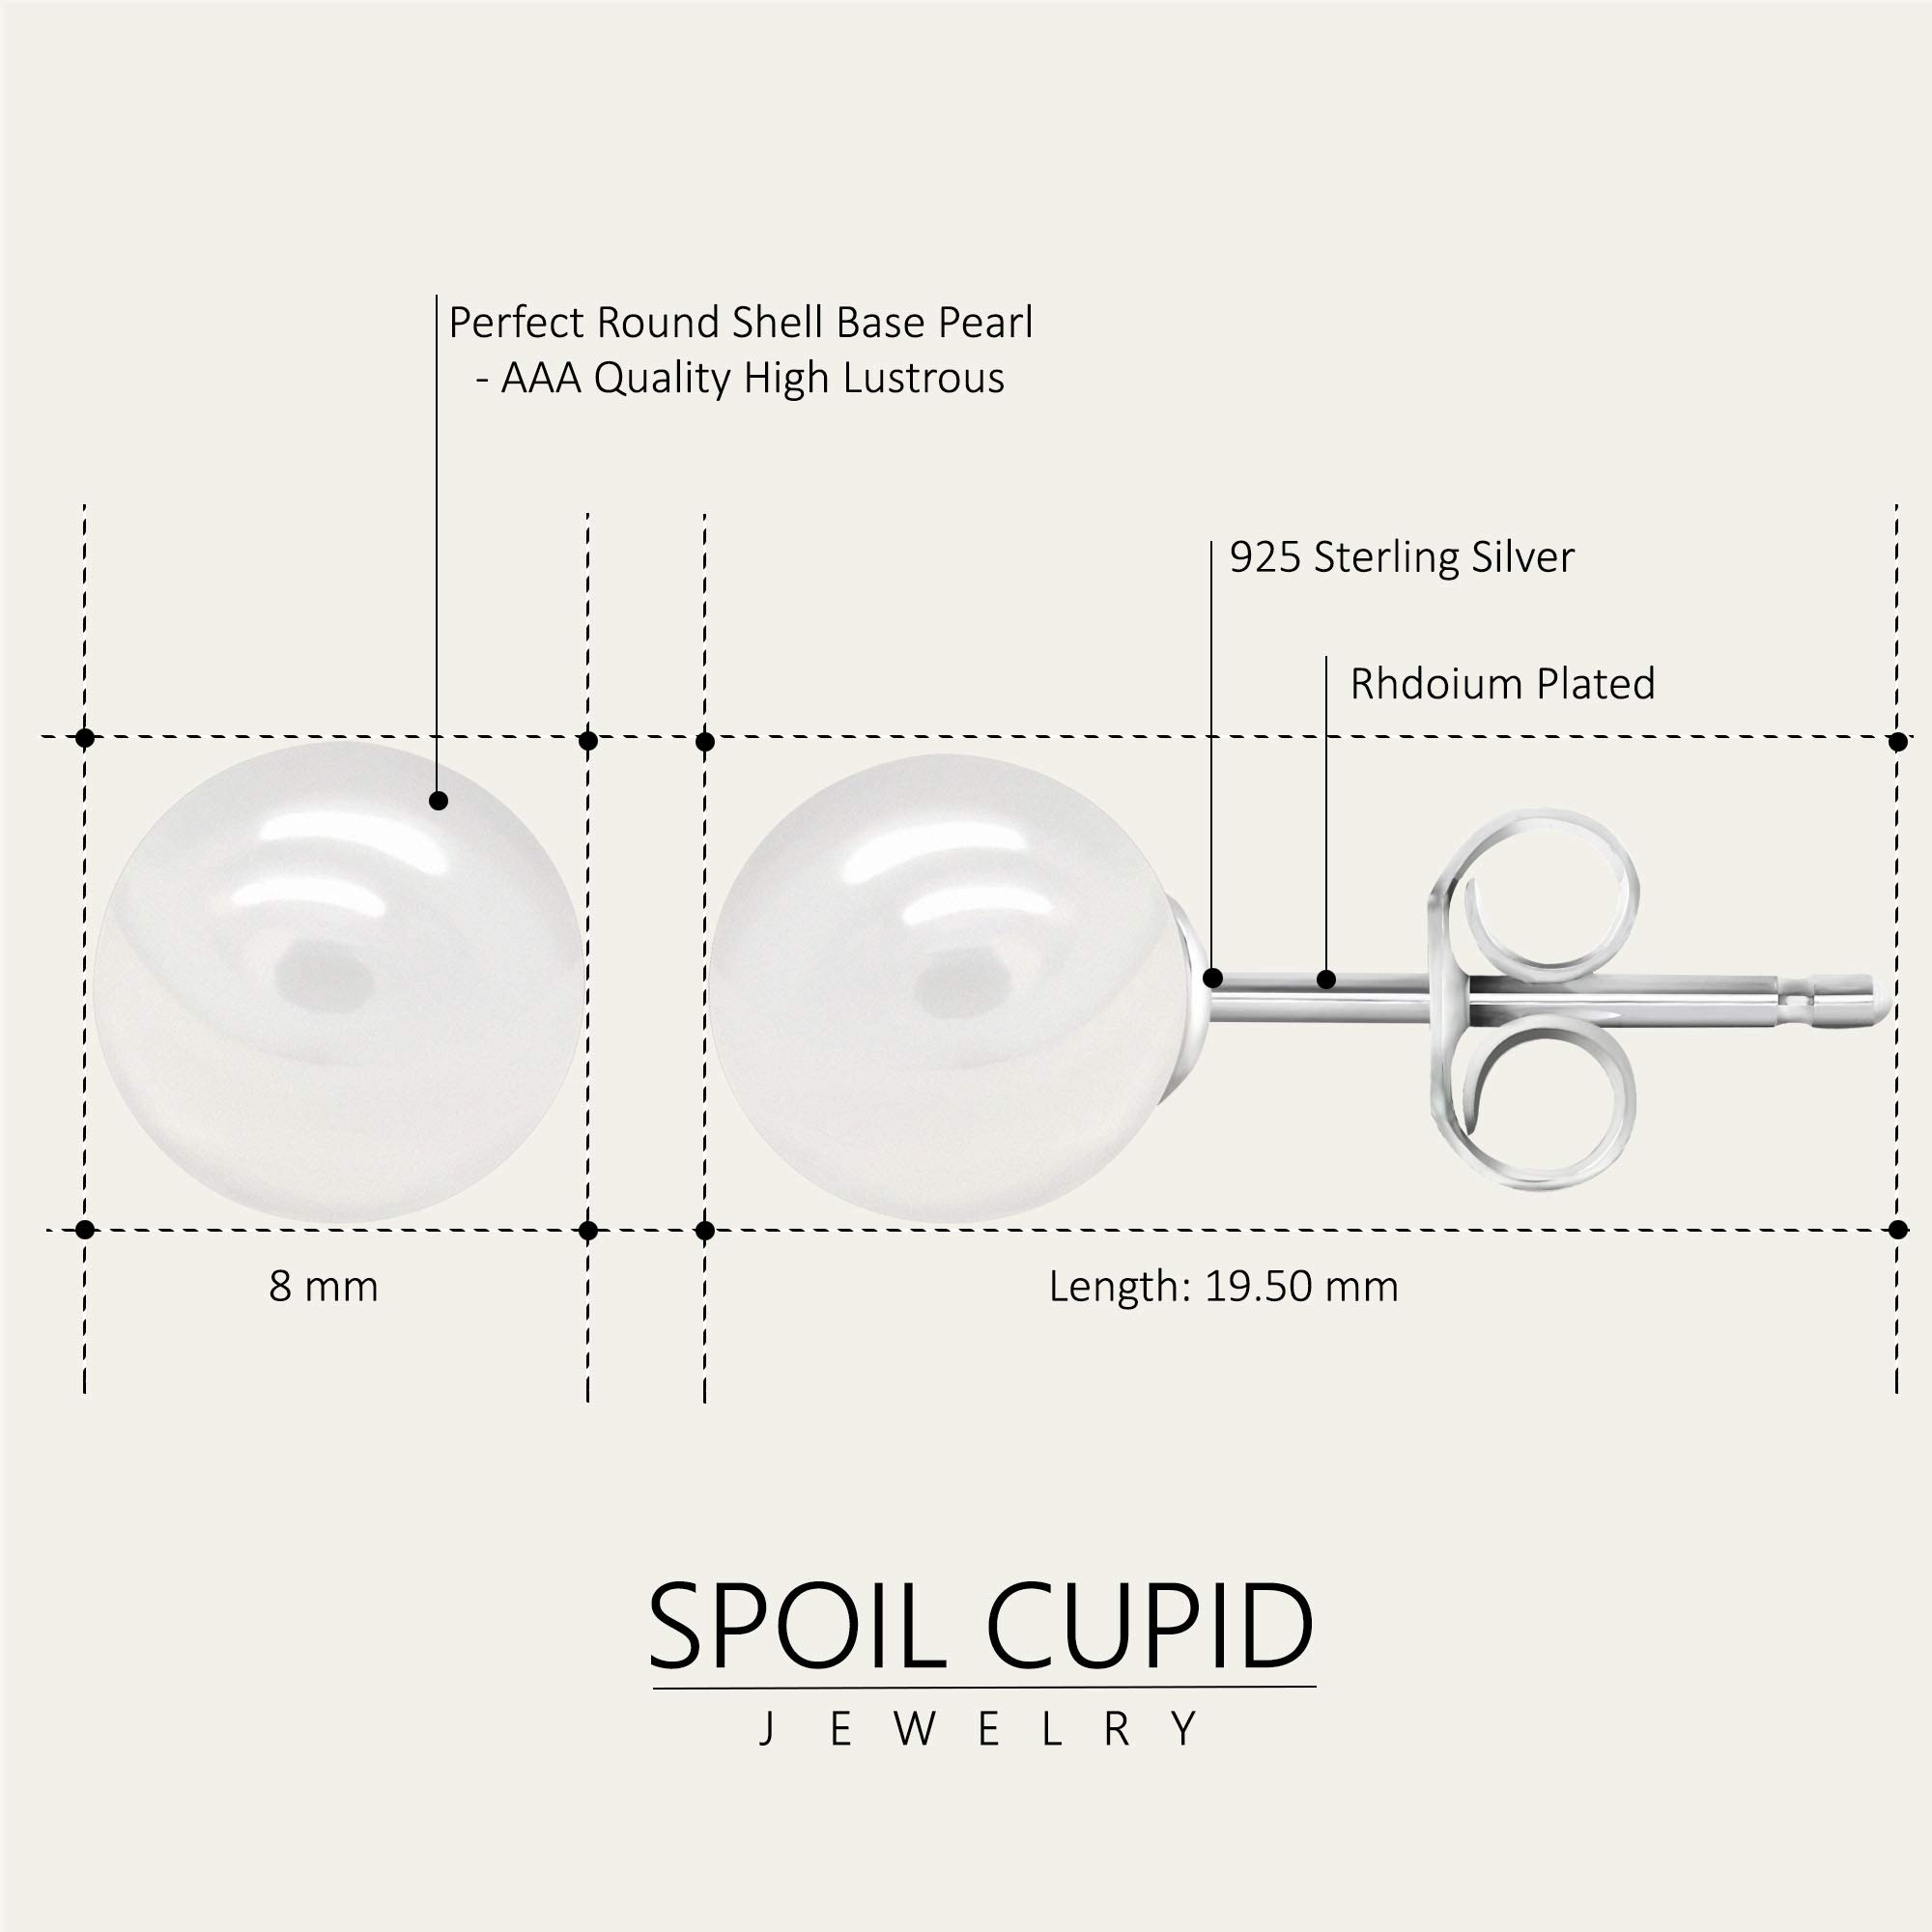 White Smooth Round Shell Base Imitation Pearl Rhodium-Plated 925 Sterling Silver Stud Earrings, 8mm